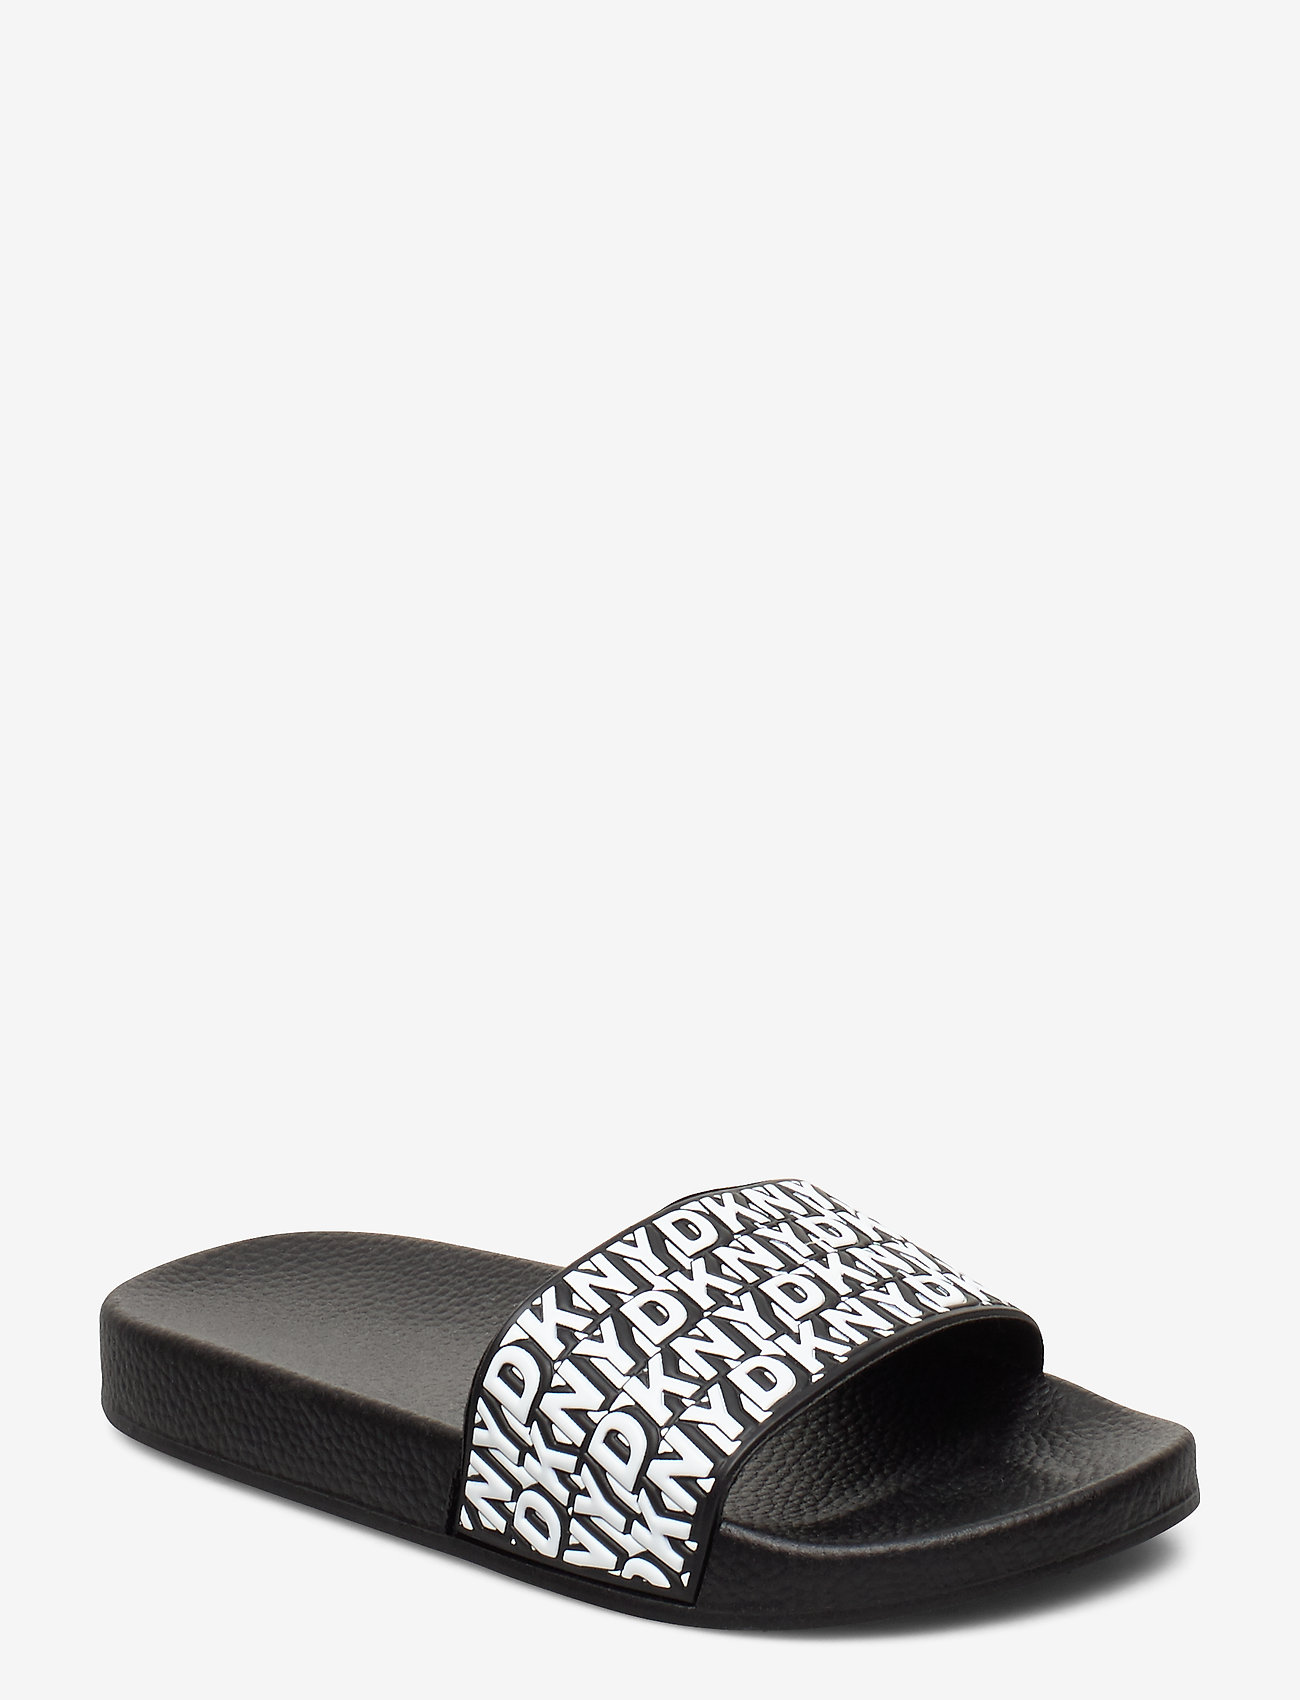 DKNY kids - AQUA SLIDES - pool sliders - black  white - 0